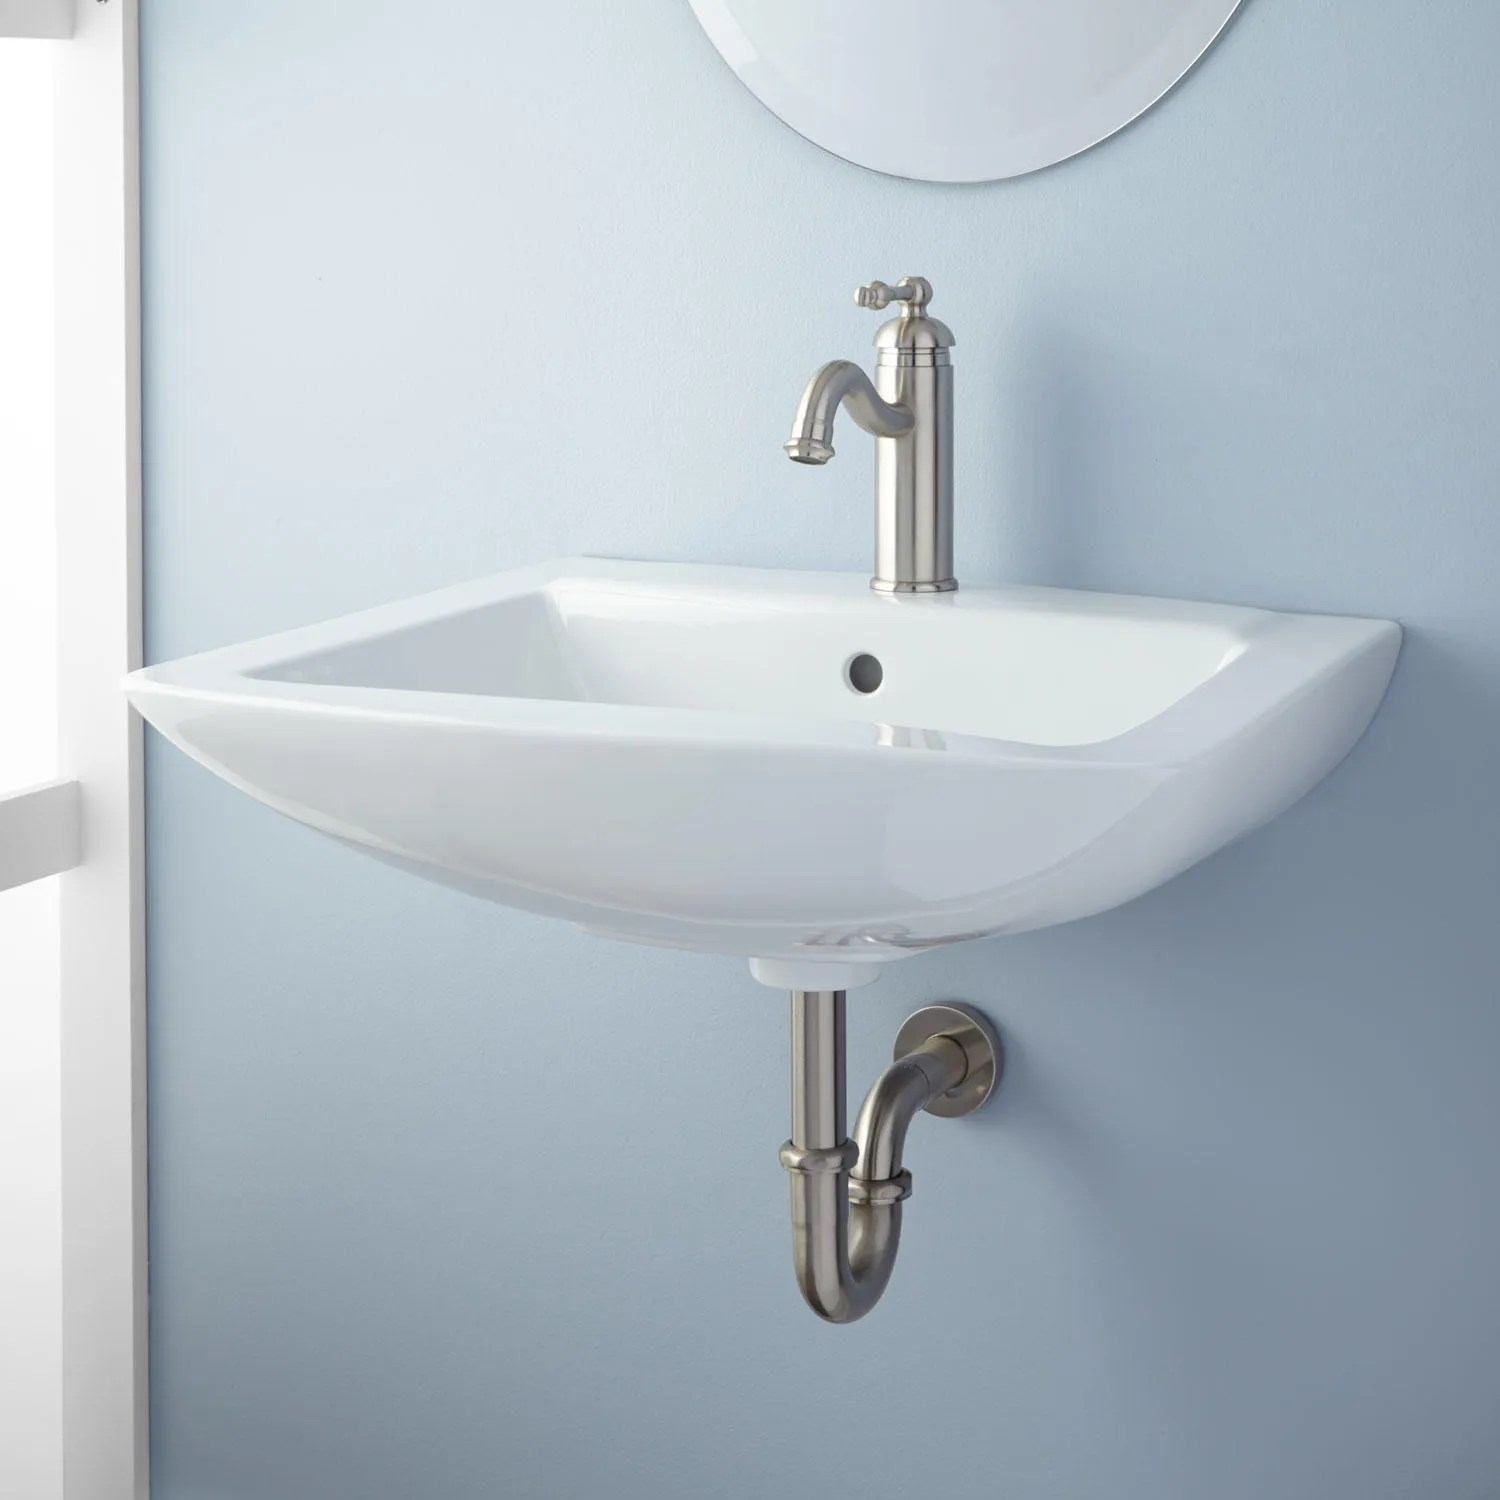 Darby WallMount Bathroom Sink